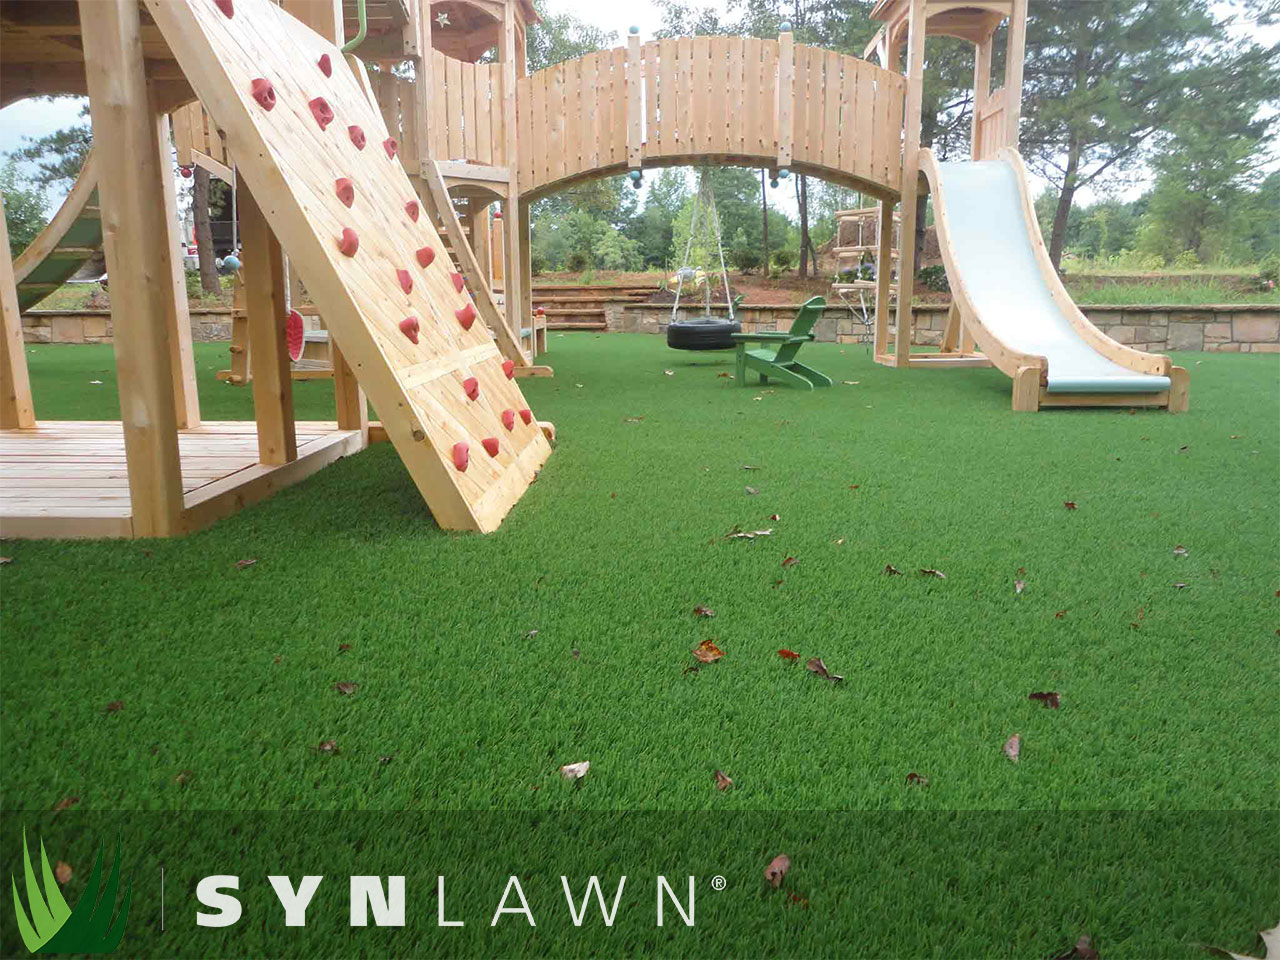 SYNLawn Playground Photo 16